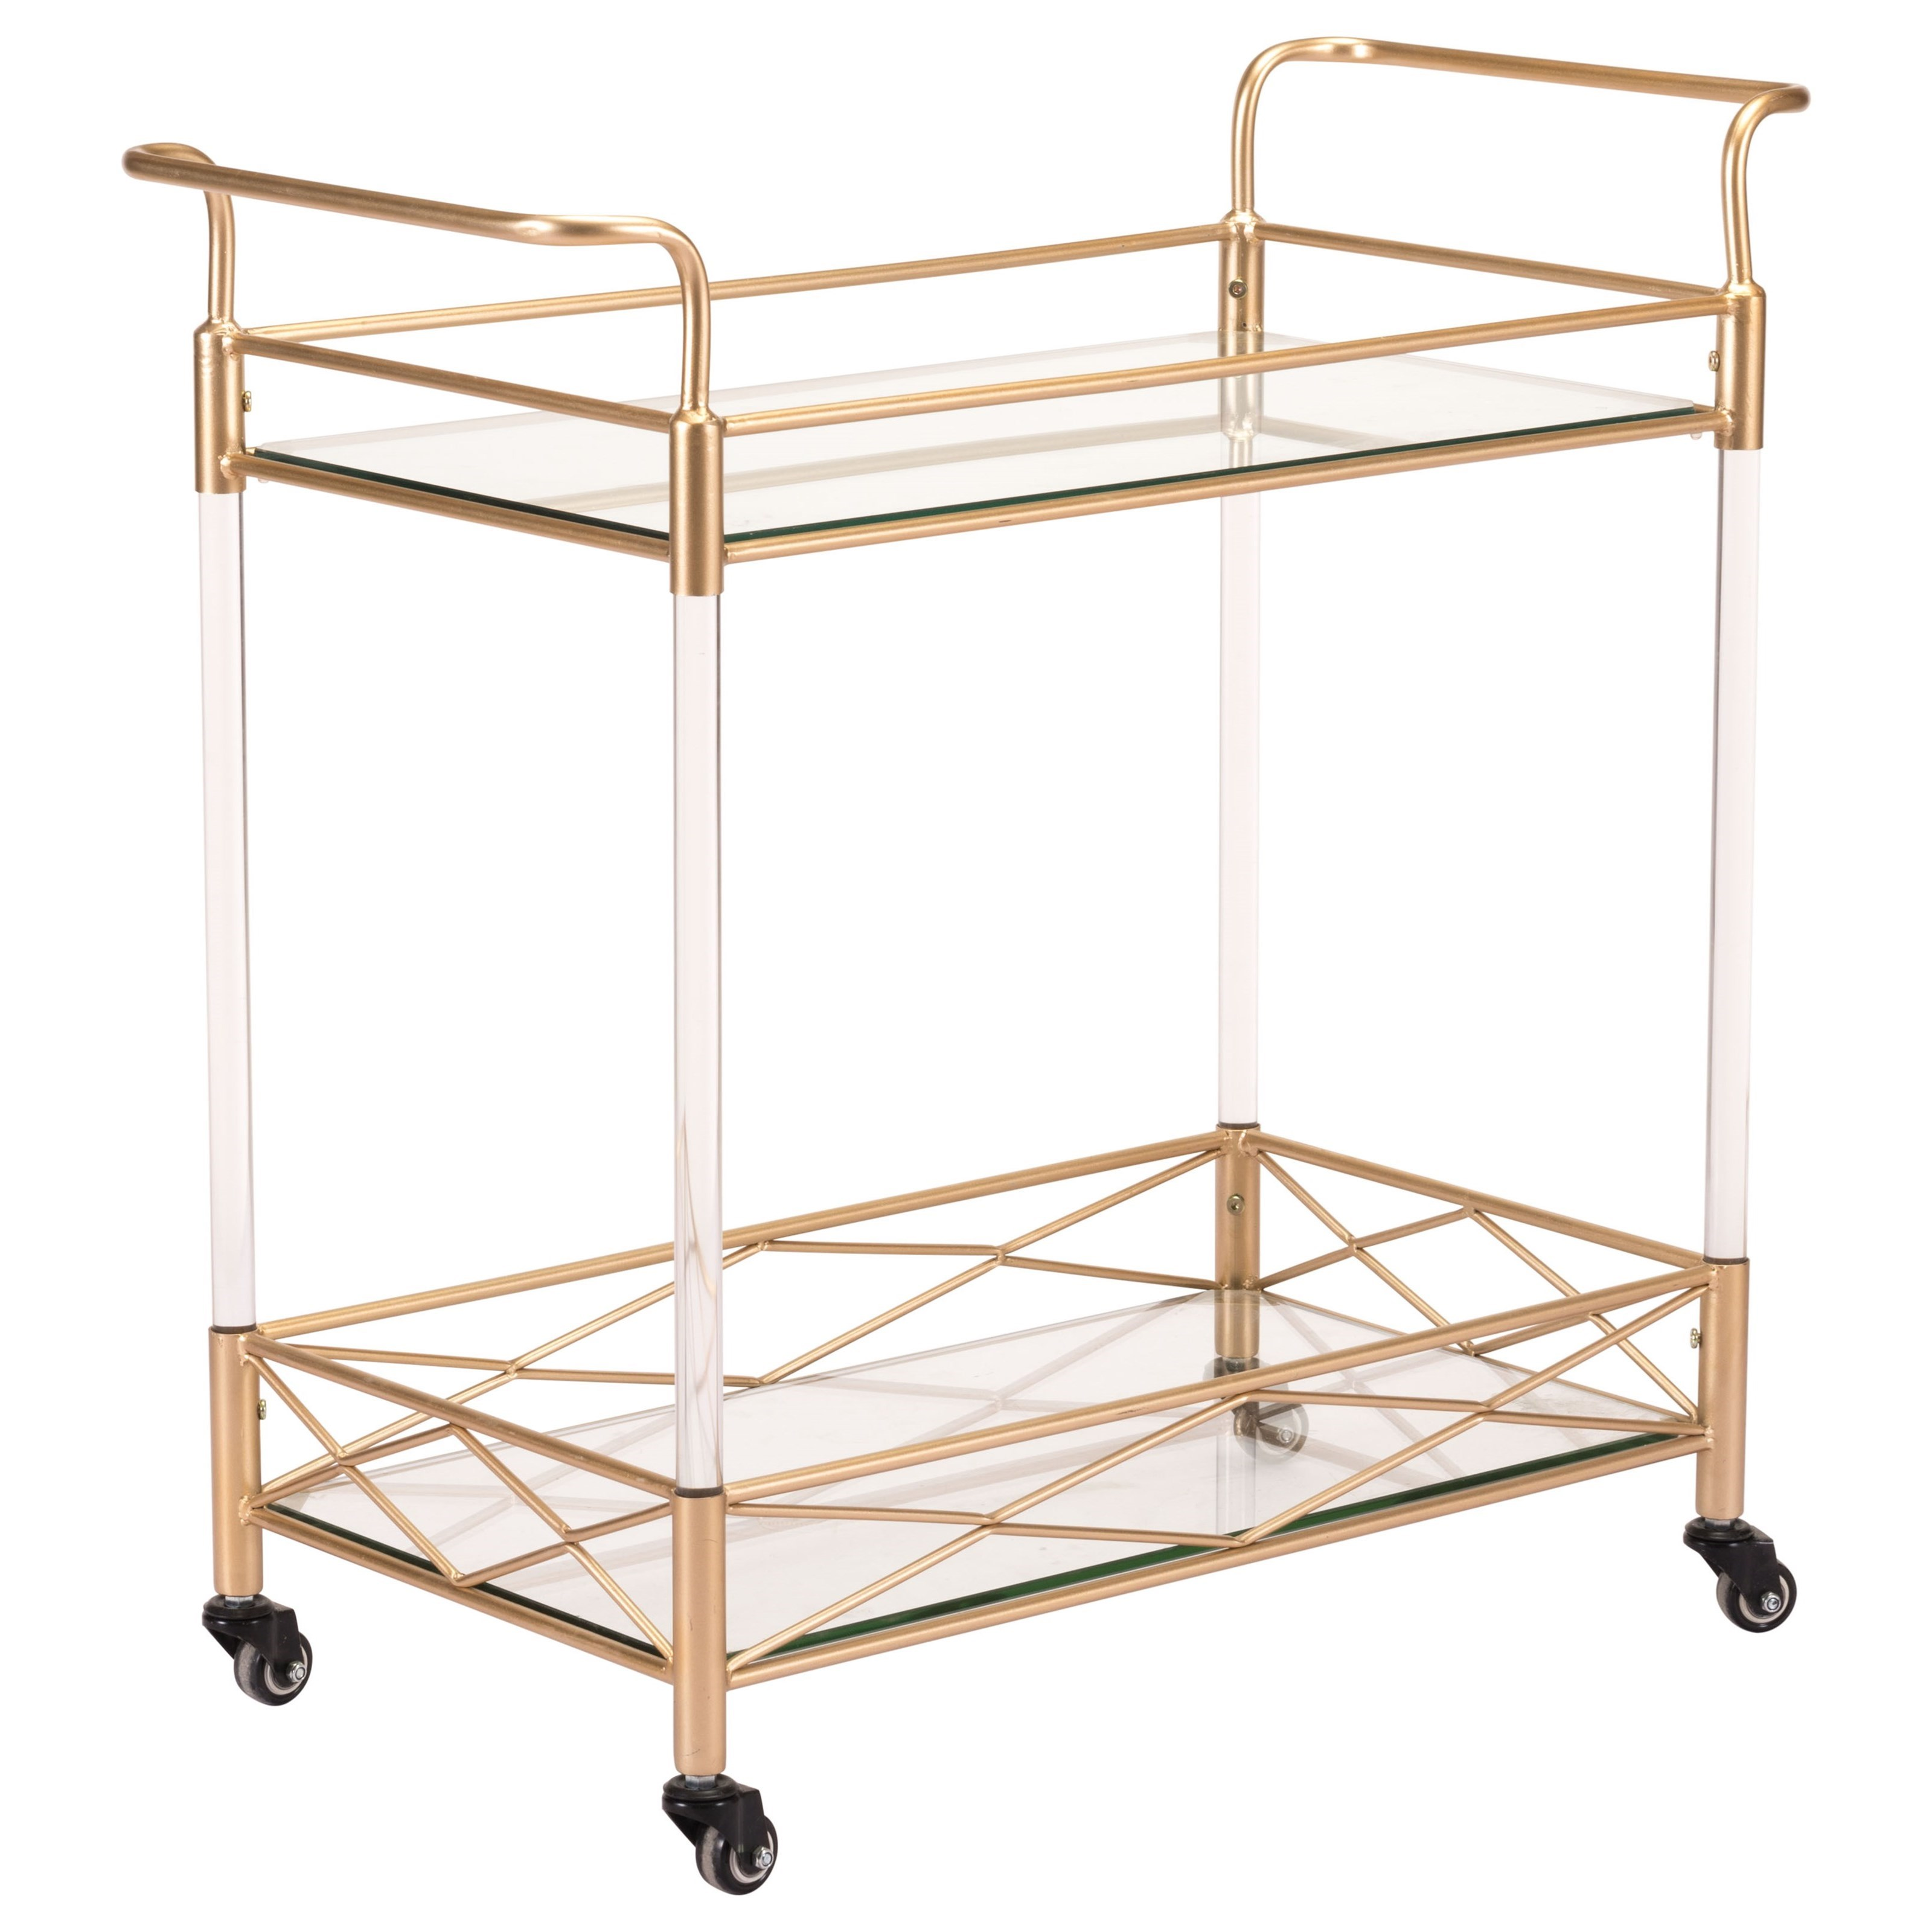 Zuo Accent Tables Lucite Bar Cart - Item Number: A10809